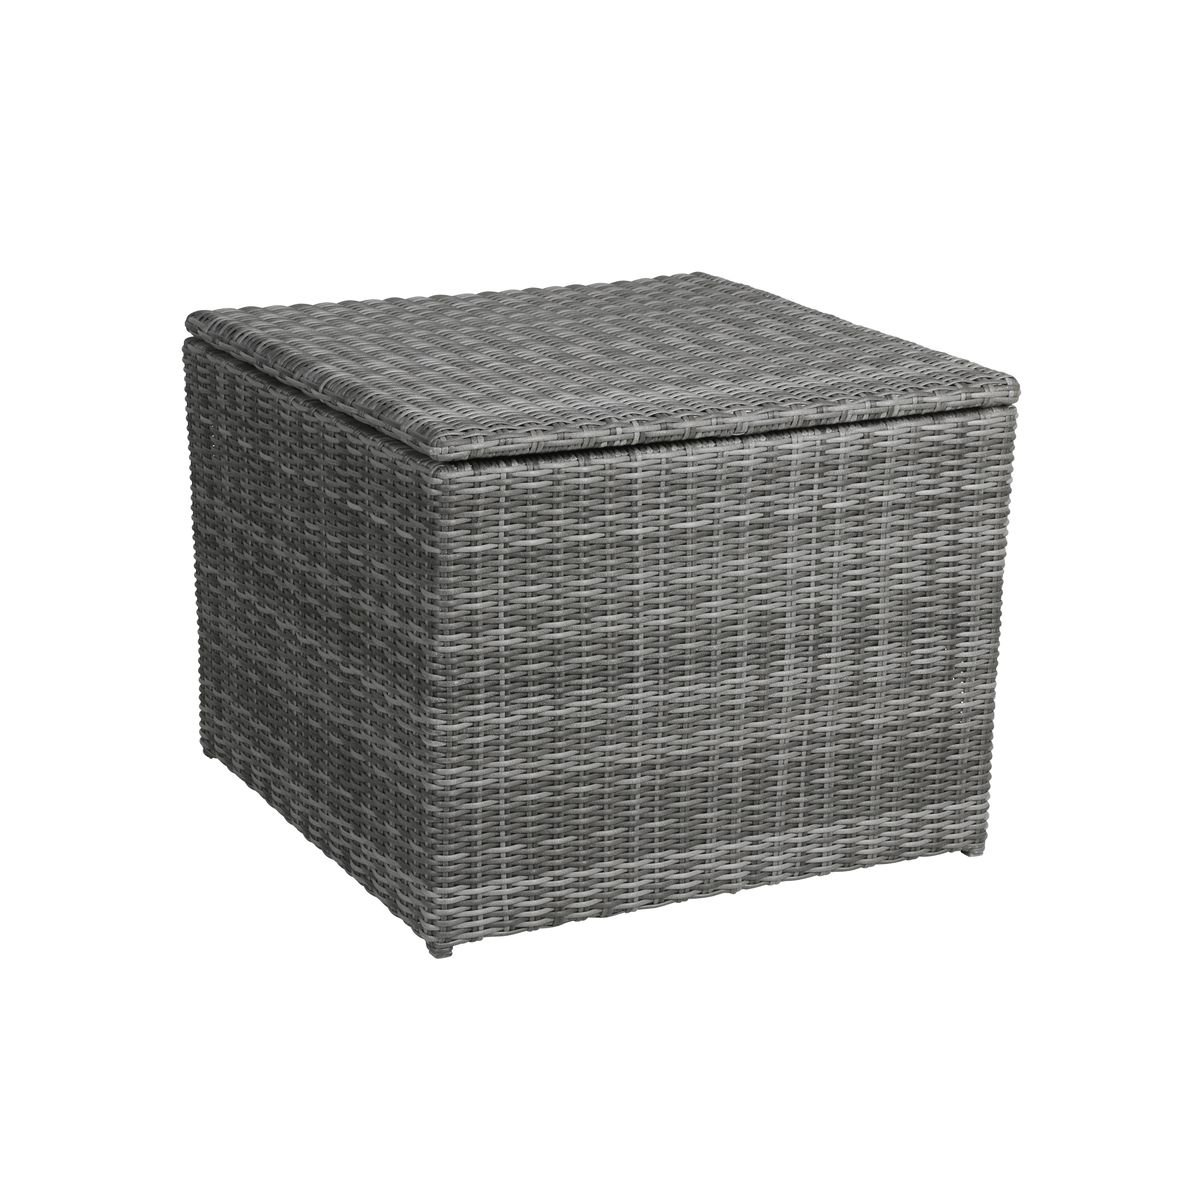 greemotion auflagenbox bari rattan kissenbox in grau kissen auflagen truhe aus polyrattan. Black Bedroom Furniture Sets. Home Design Ideas